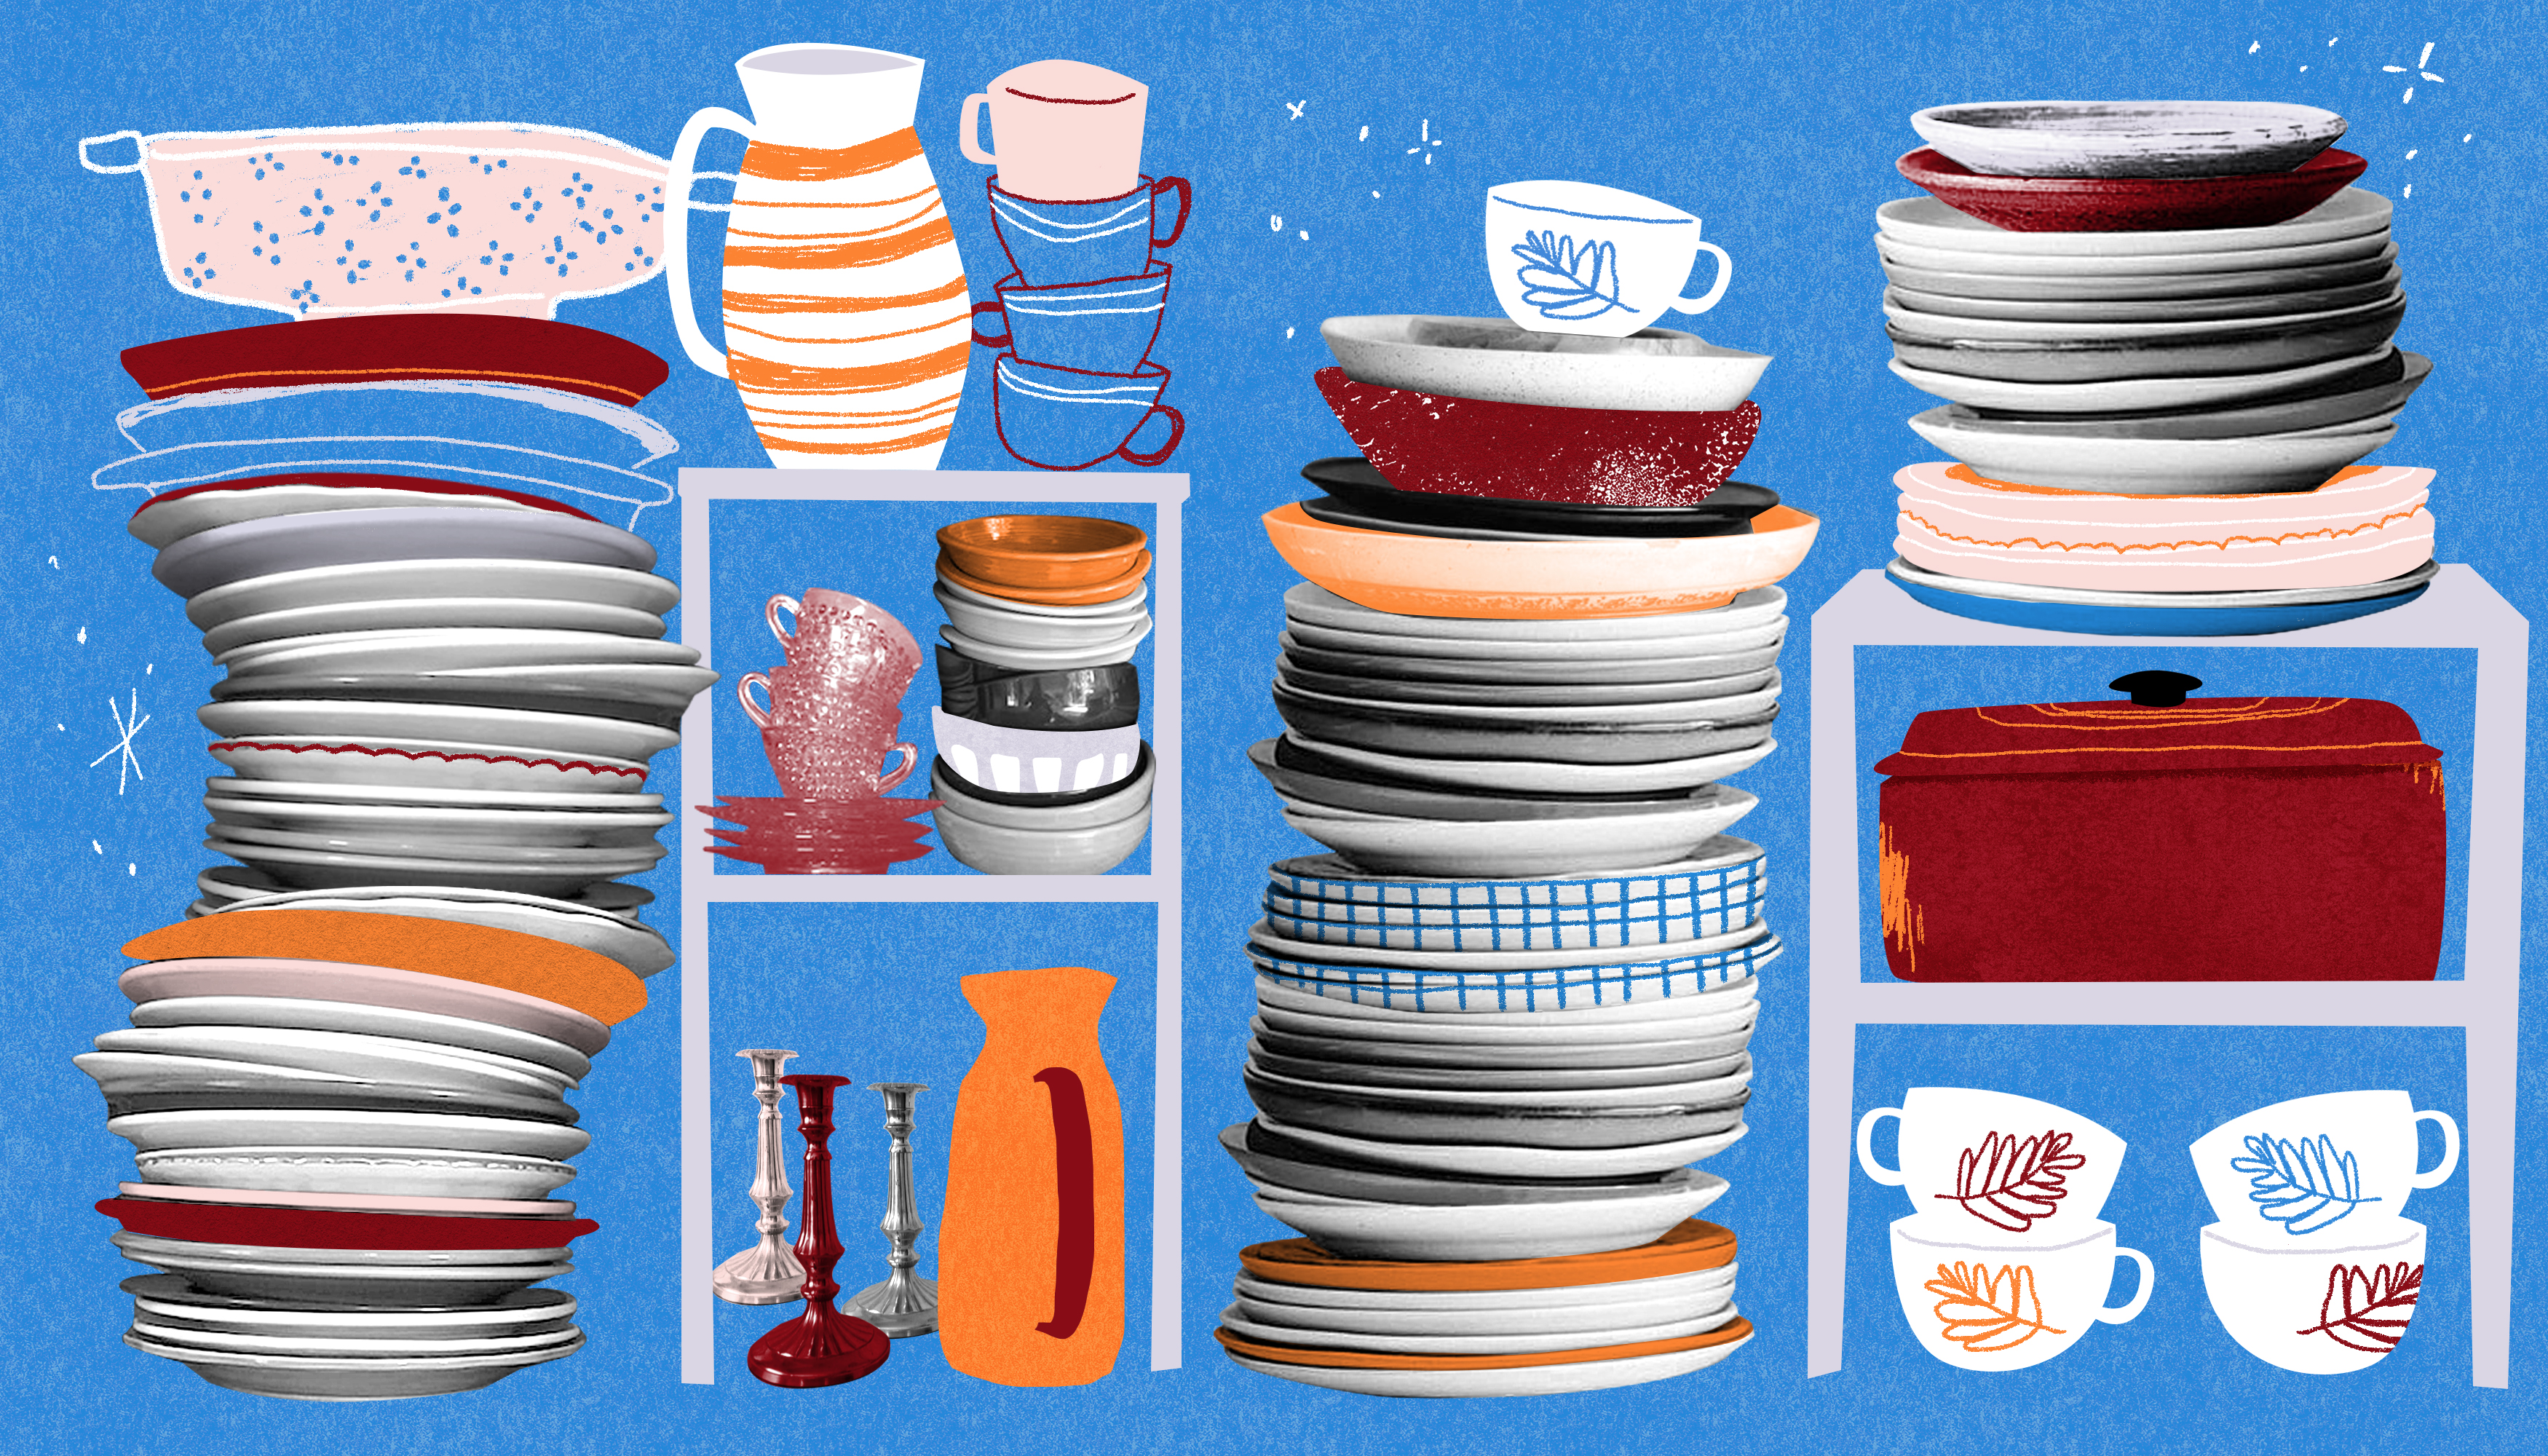 An illustration of orange, white, and red dishes stacked up. There is a blue background.